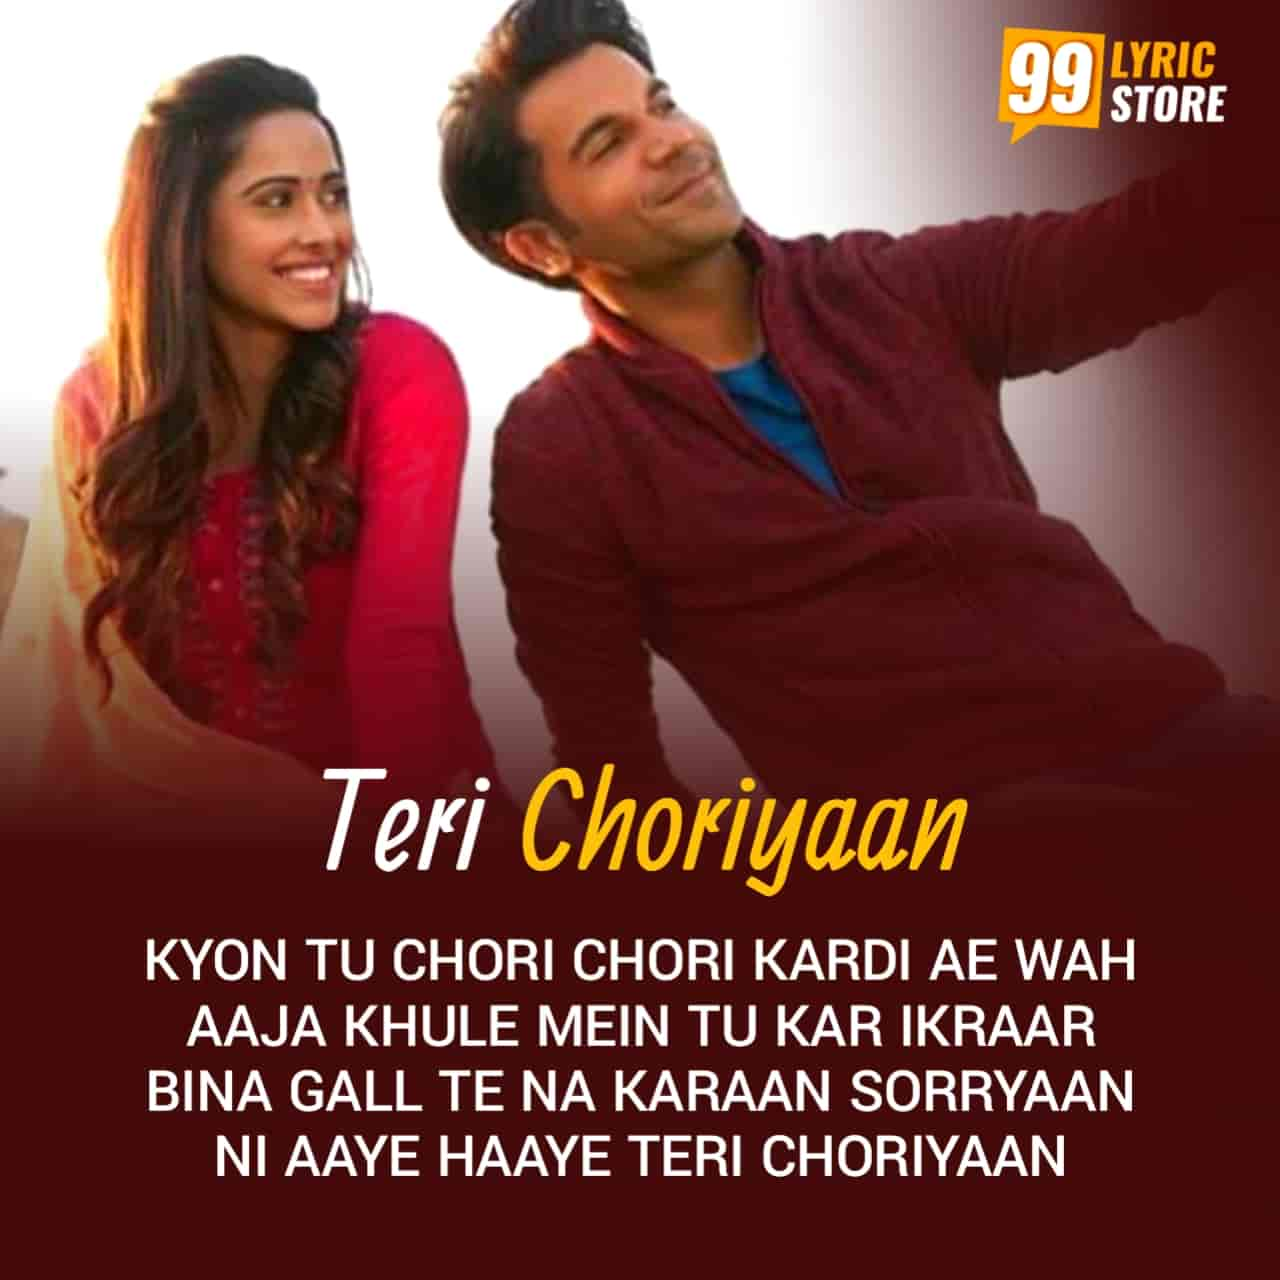 A very beautiful punjabi song Teri Choriyaan Rajkumar Rao and Nushrratt Bharuccha starrer movie Chhalaang's next song which will steal our hearts.